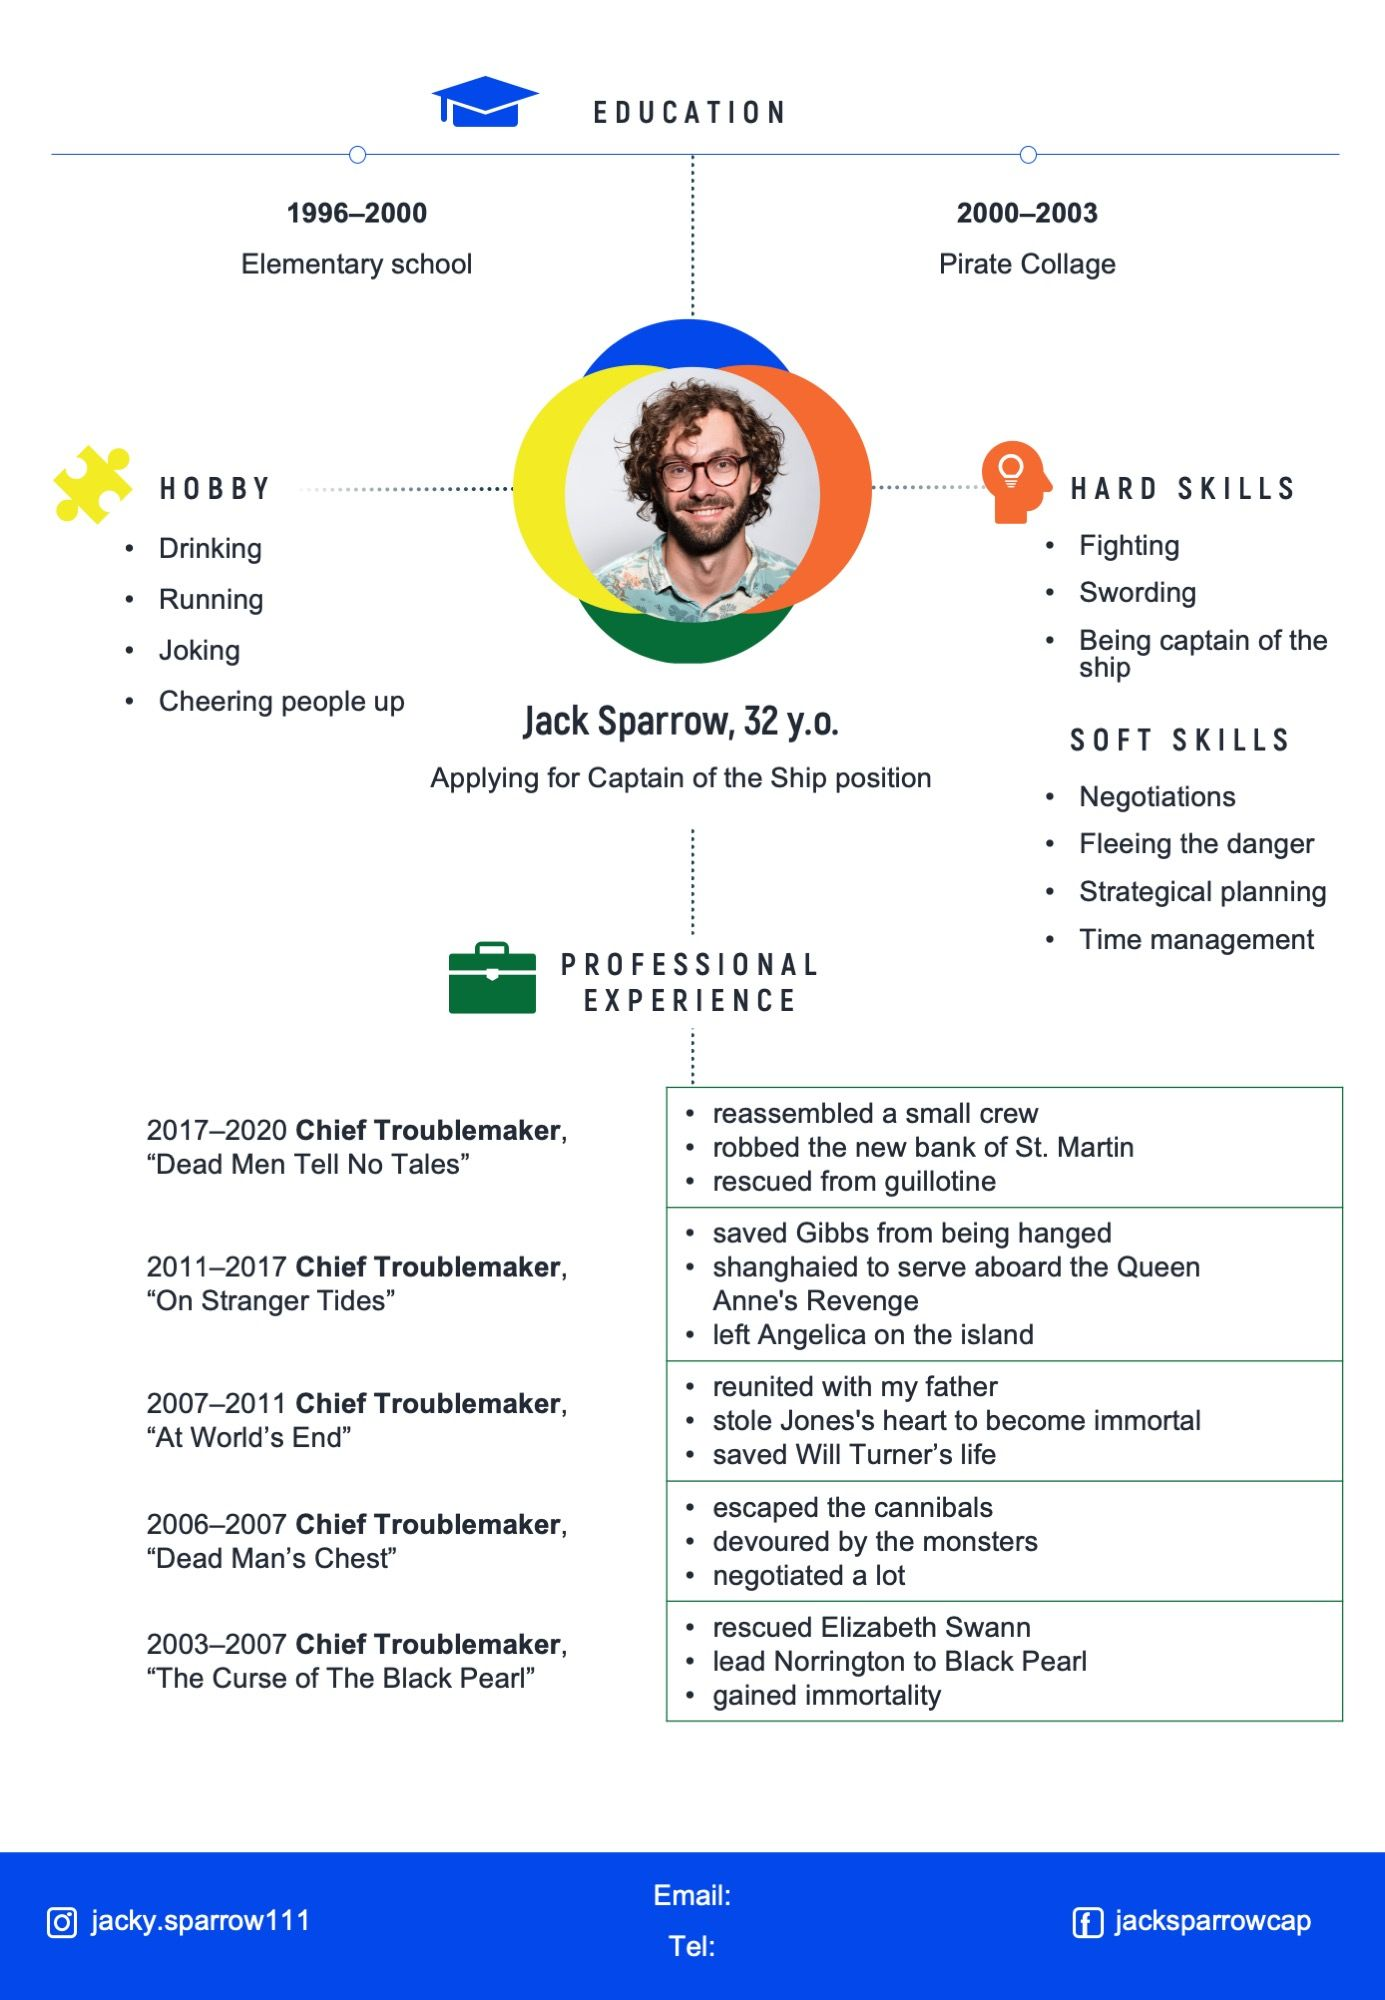 Creative 1Page Resume Template Made in PowerPoint in 2020